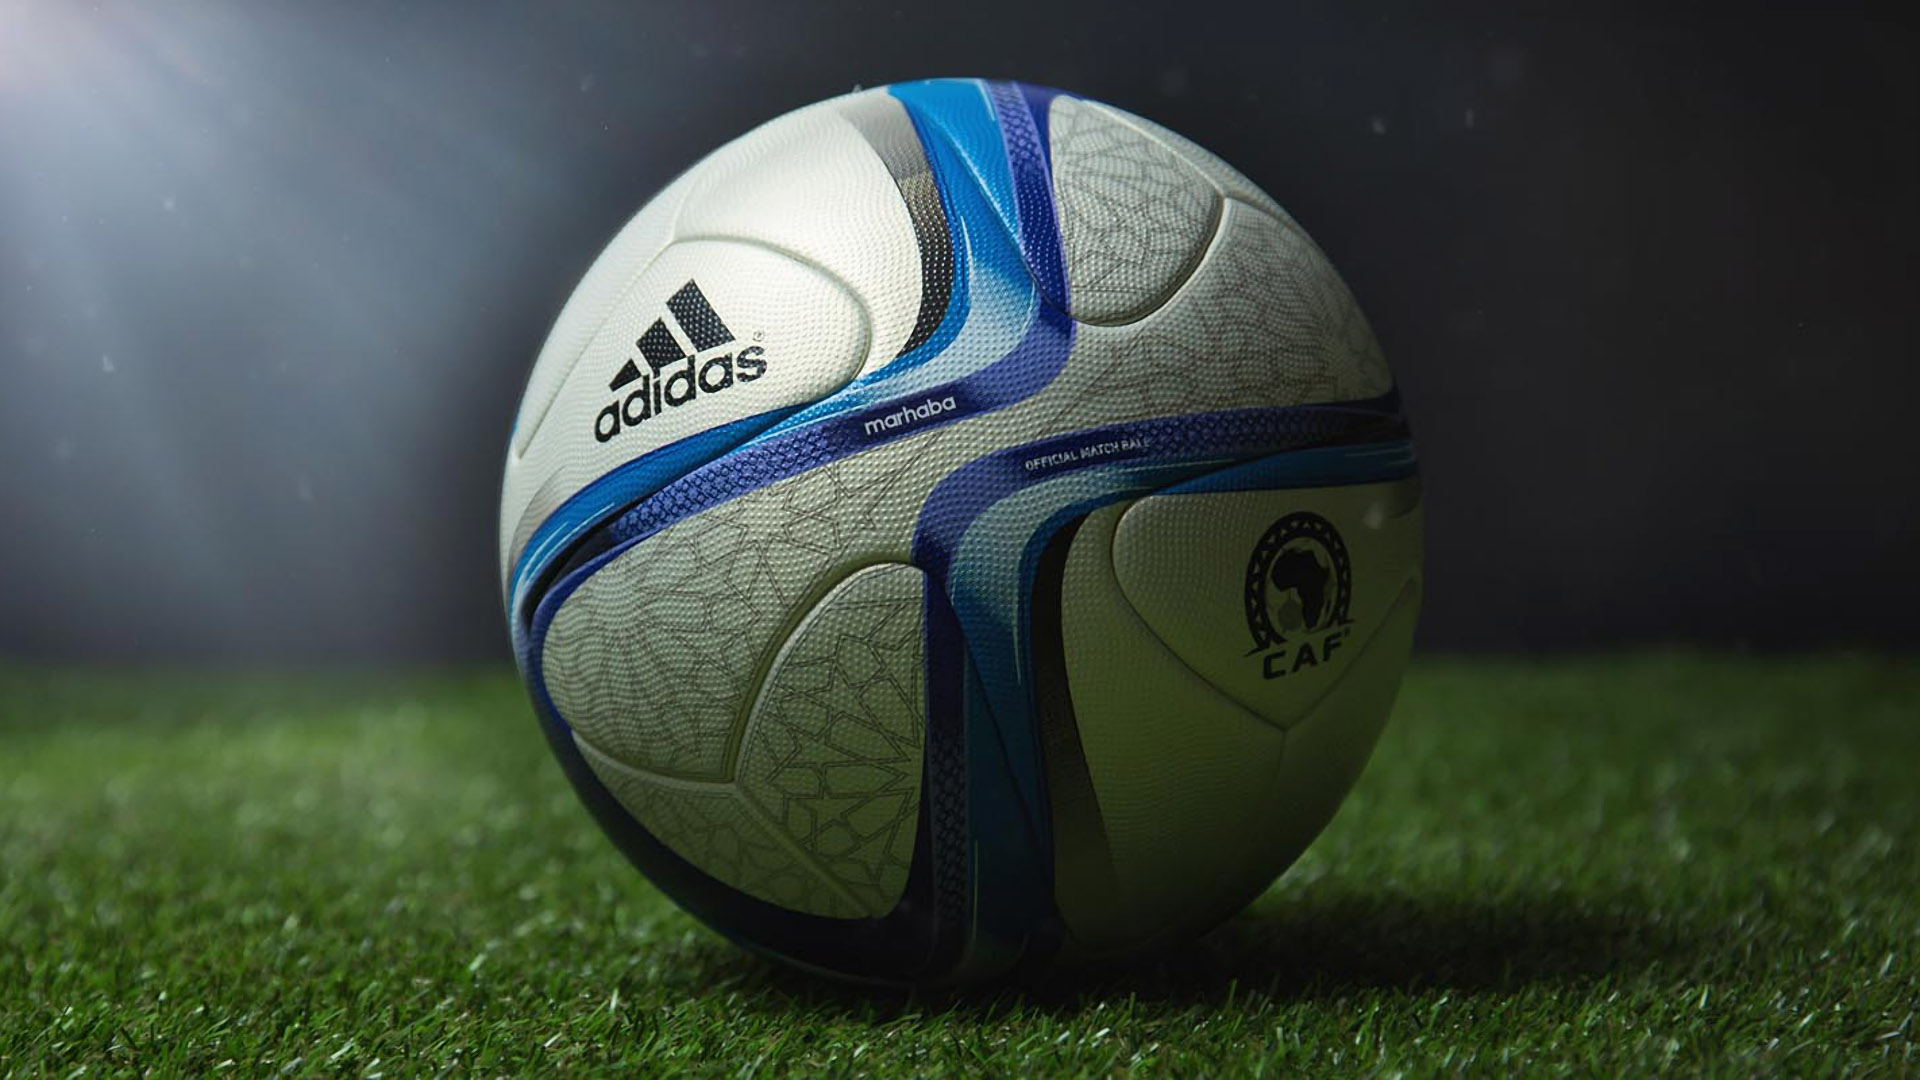 Soccer Ball Wallpaper: Adidas Soccer Wallpaper